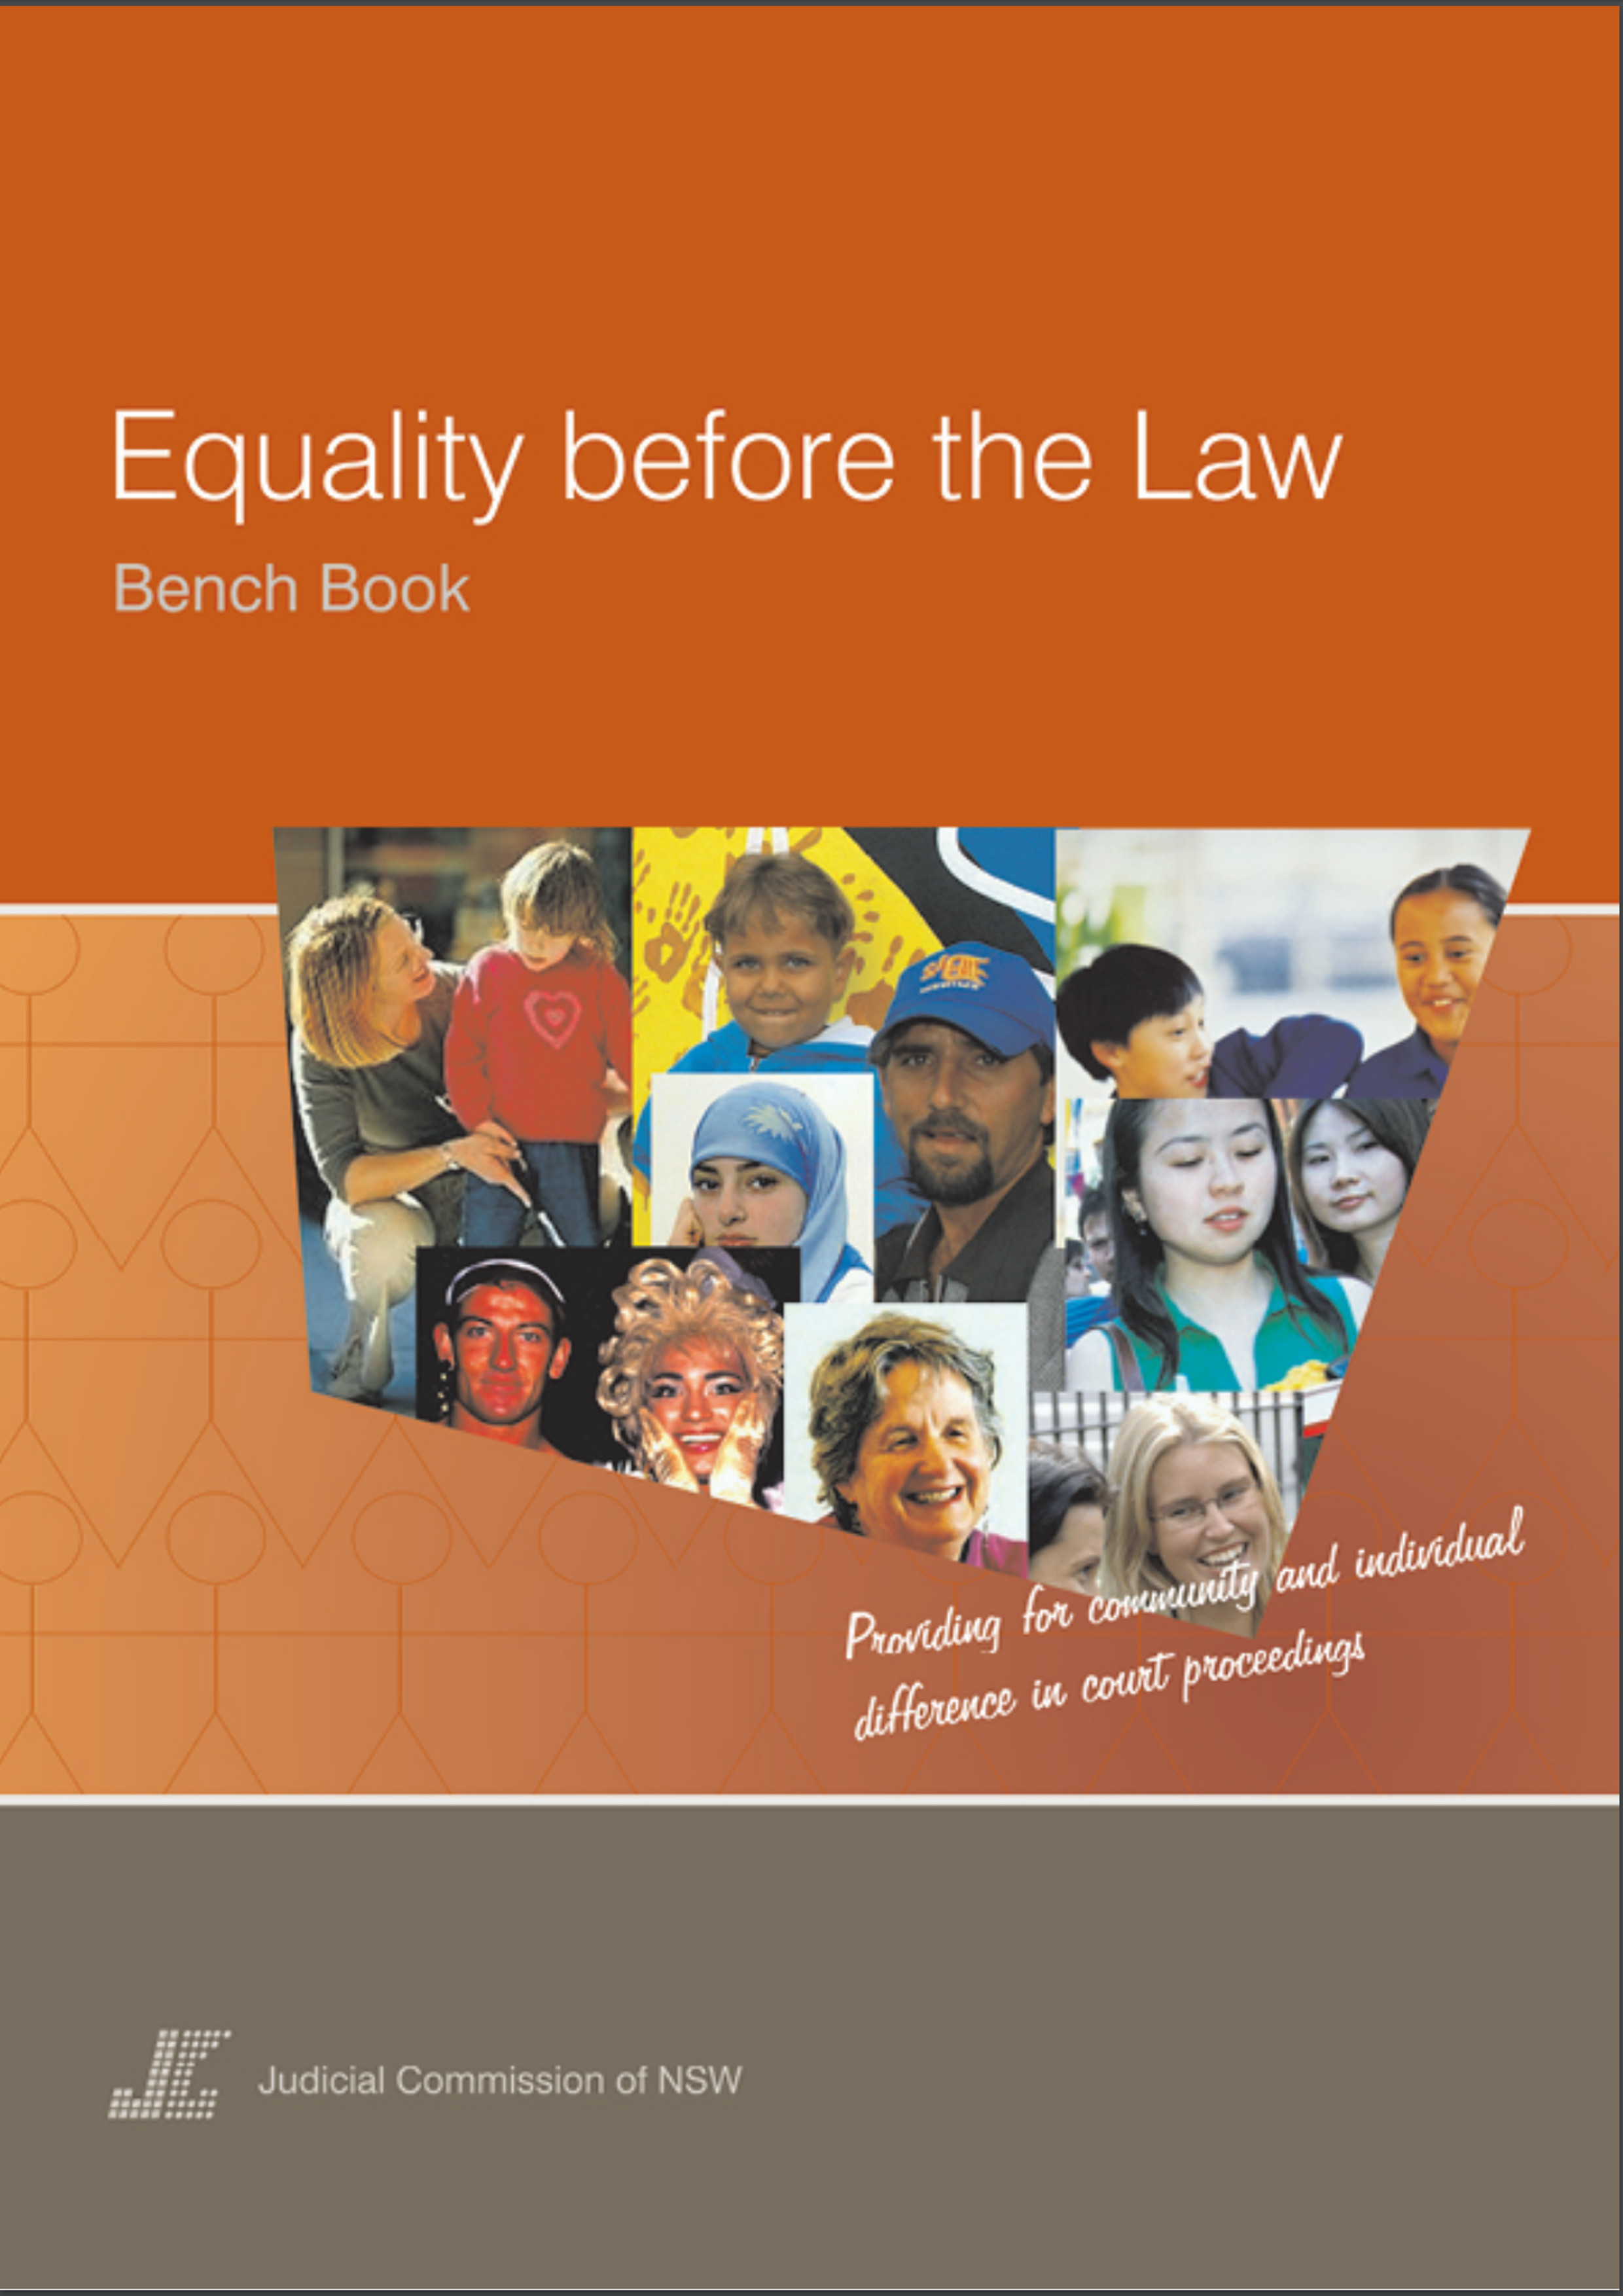 civil bench book equality before the law bench book